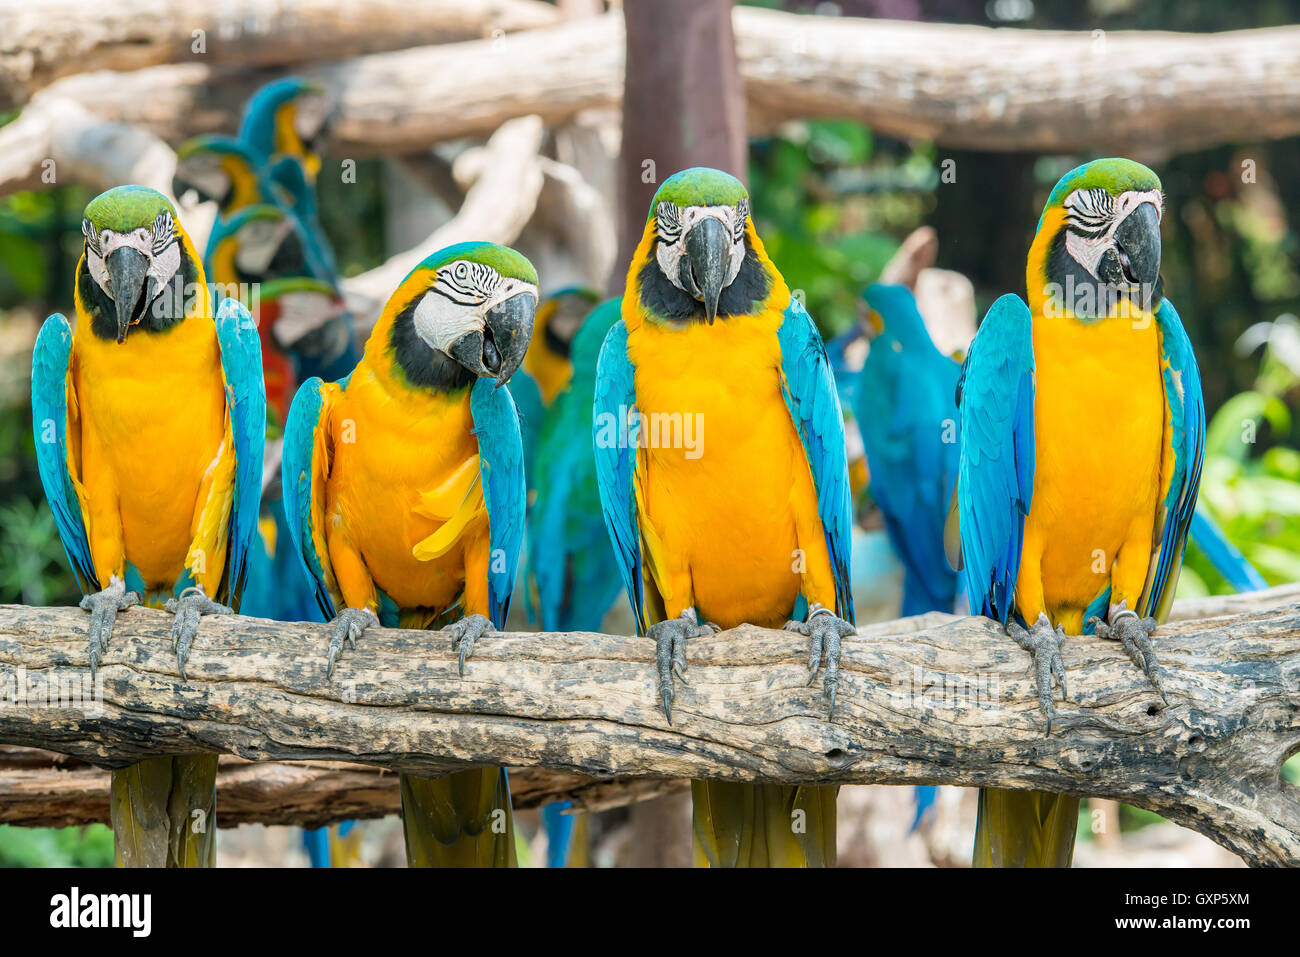 Four blue and yellow macaw birds sitting on wood branch. Colorful macaw birds in forest. - Stock Image